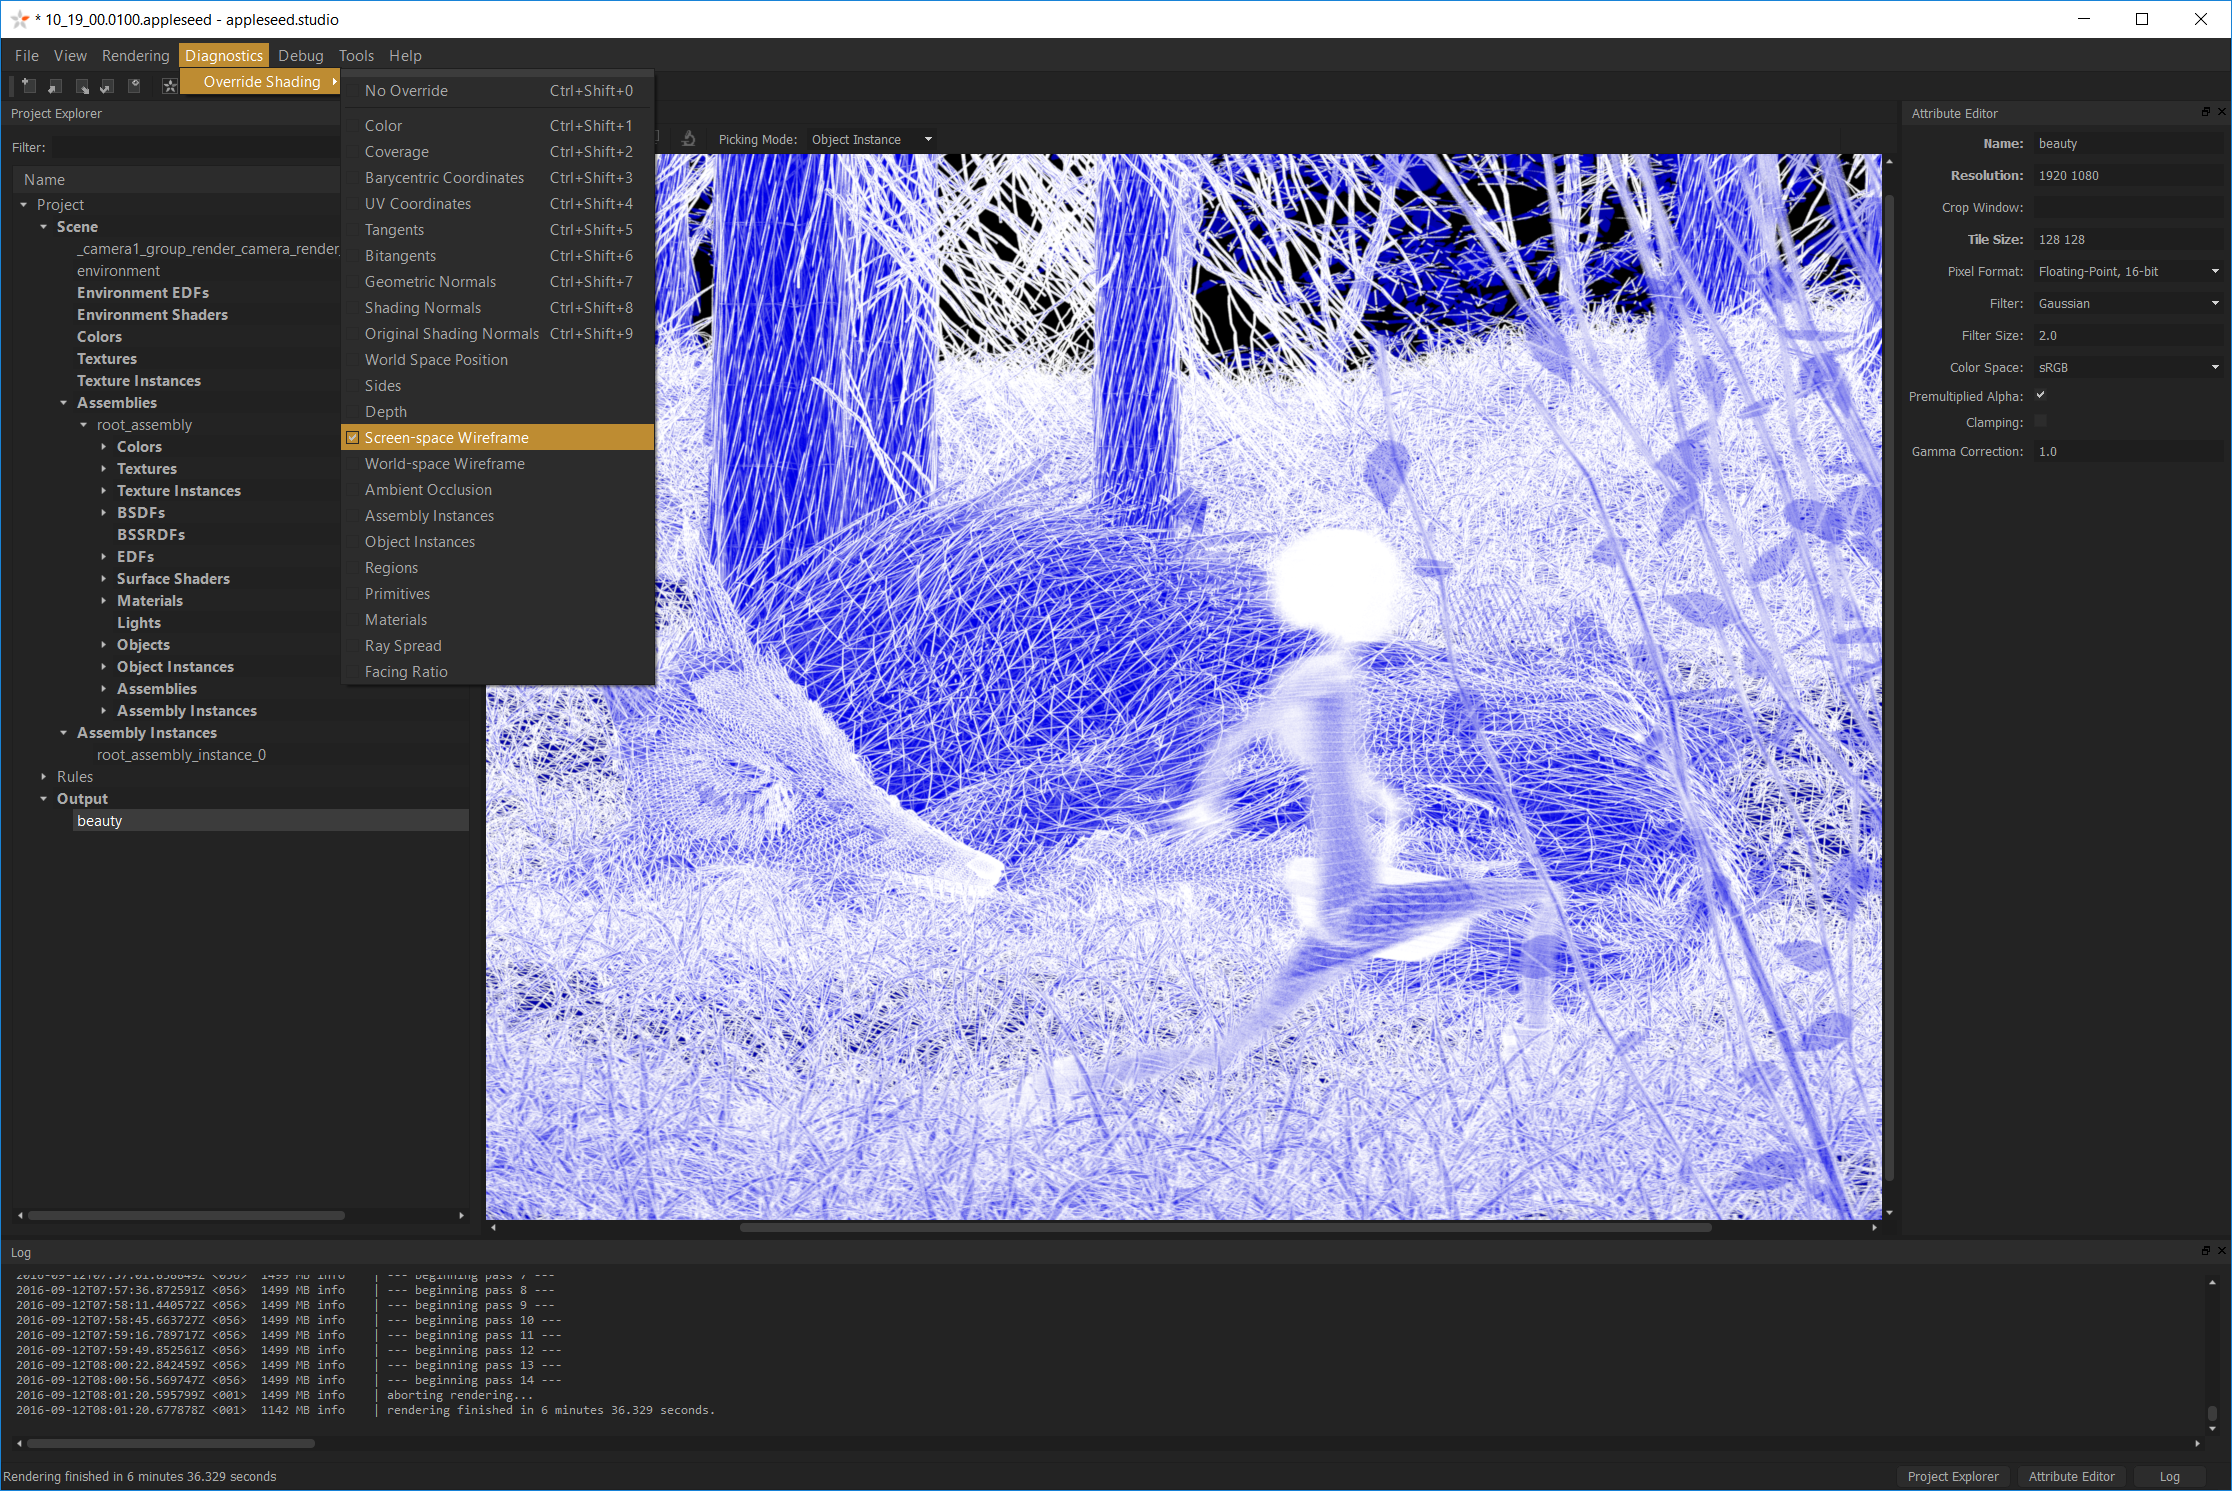 appleseed.studio, rendering a scene from Fetch with the built-in wireframe shader